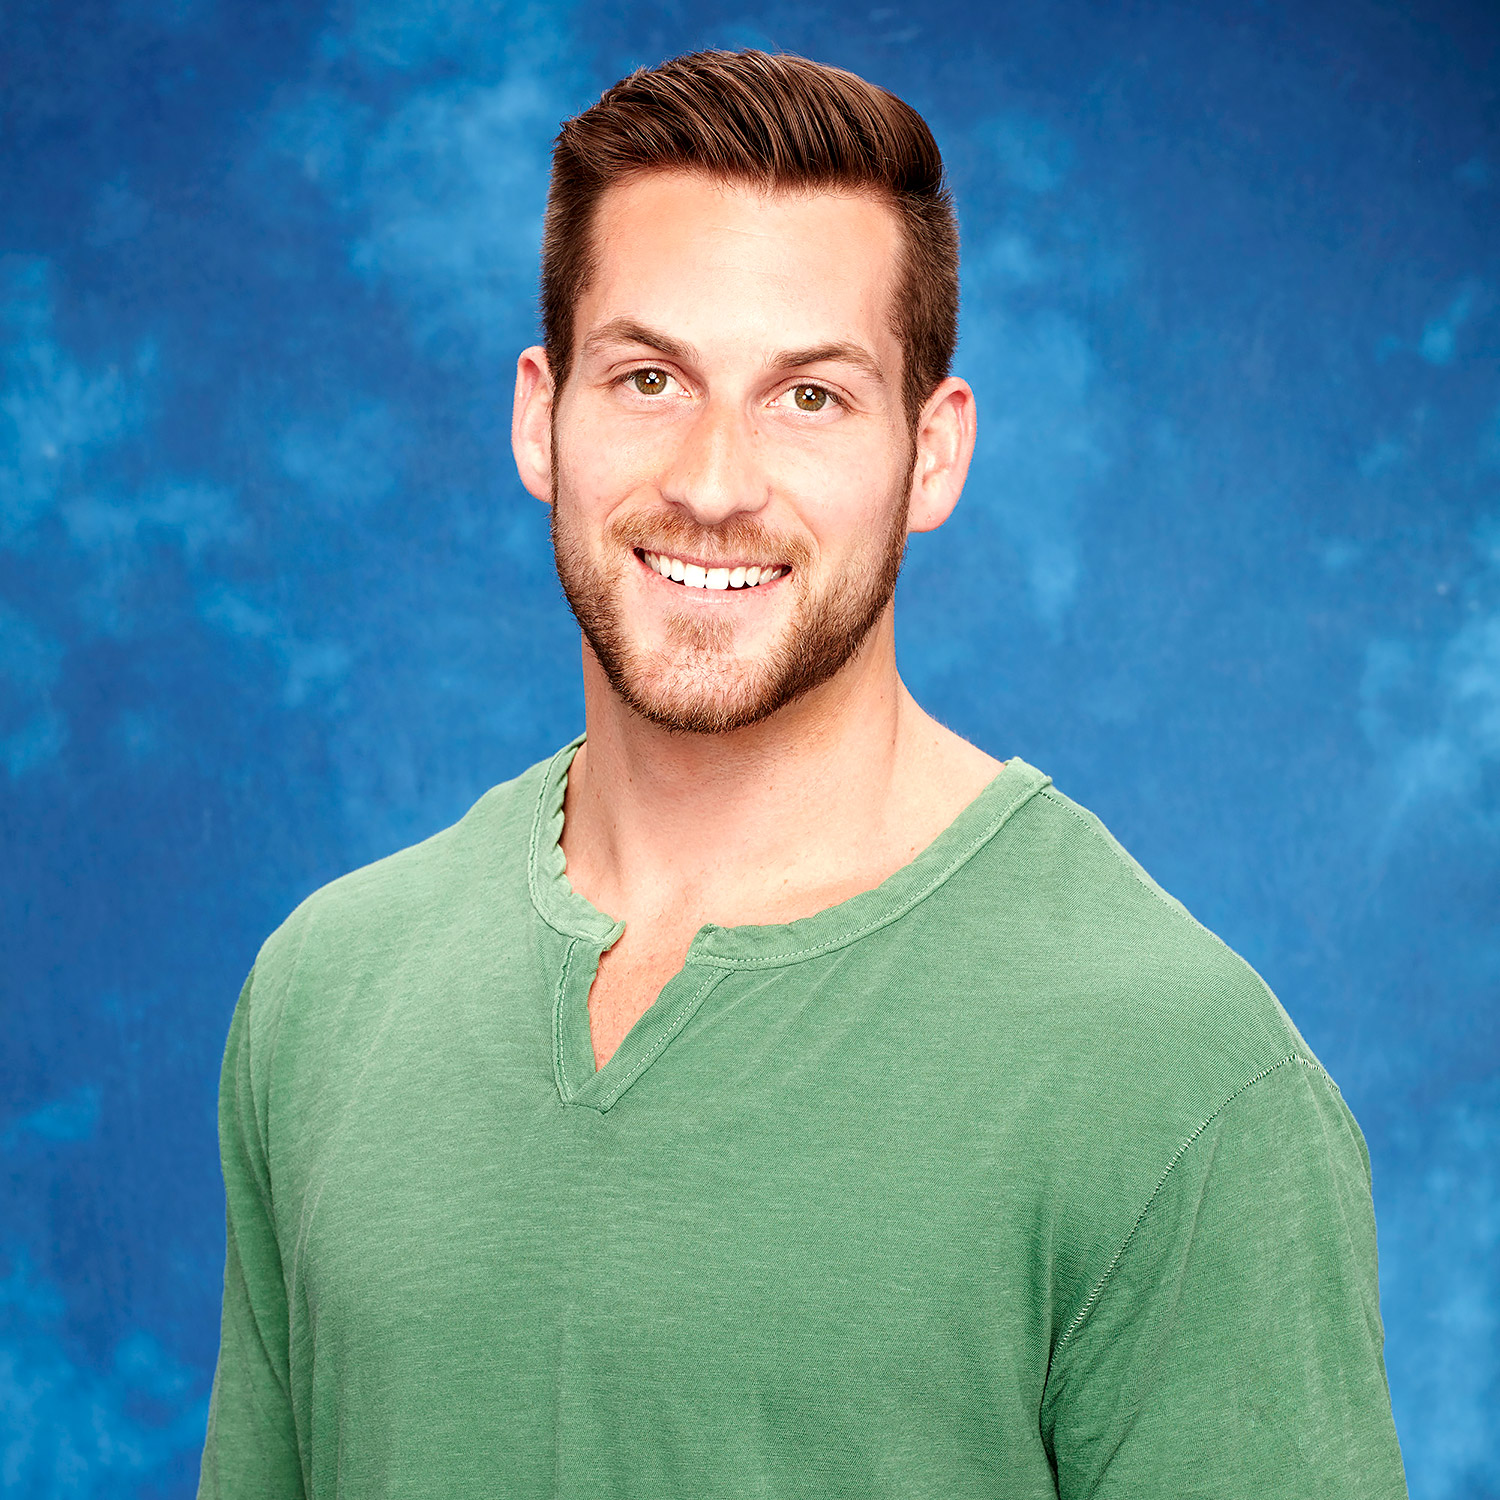 Chase From The Bachelorette